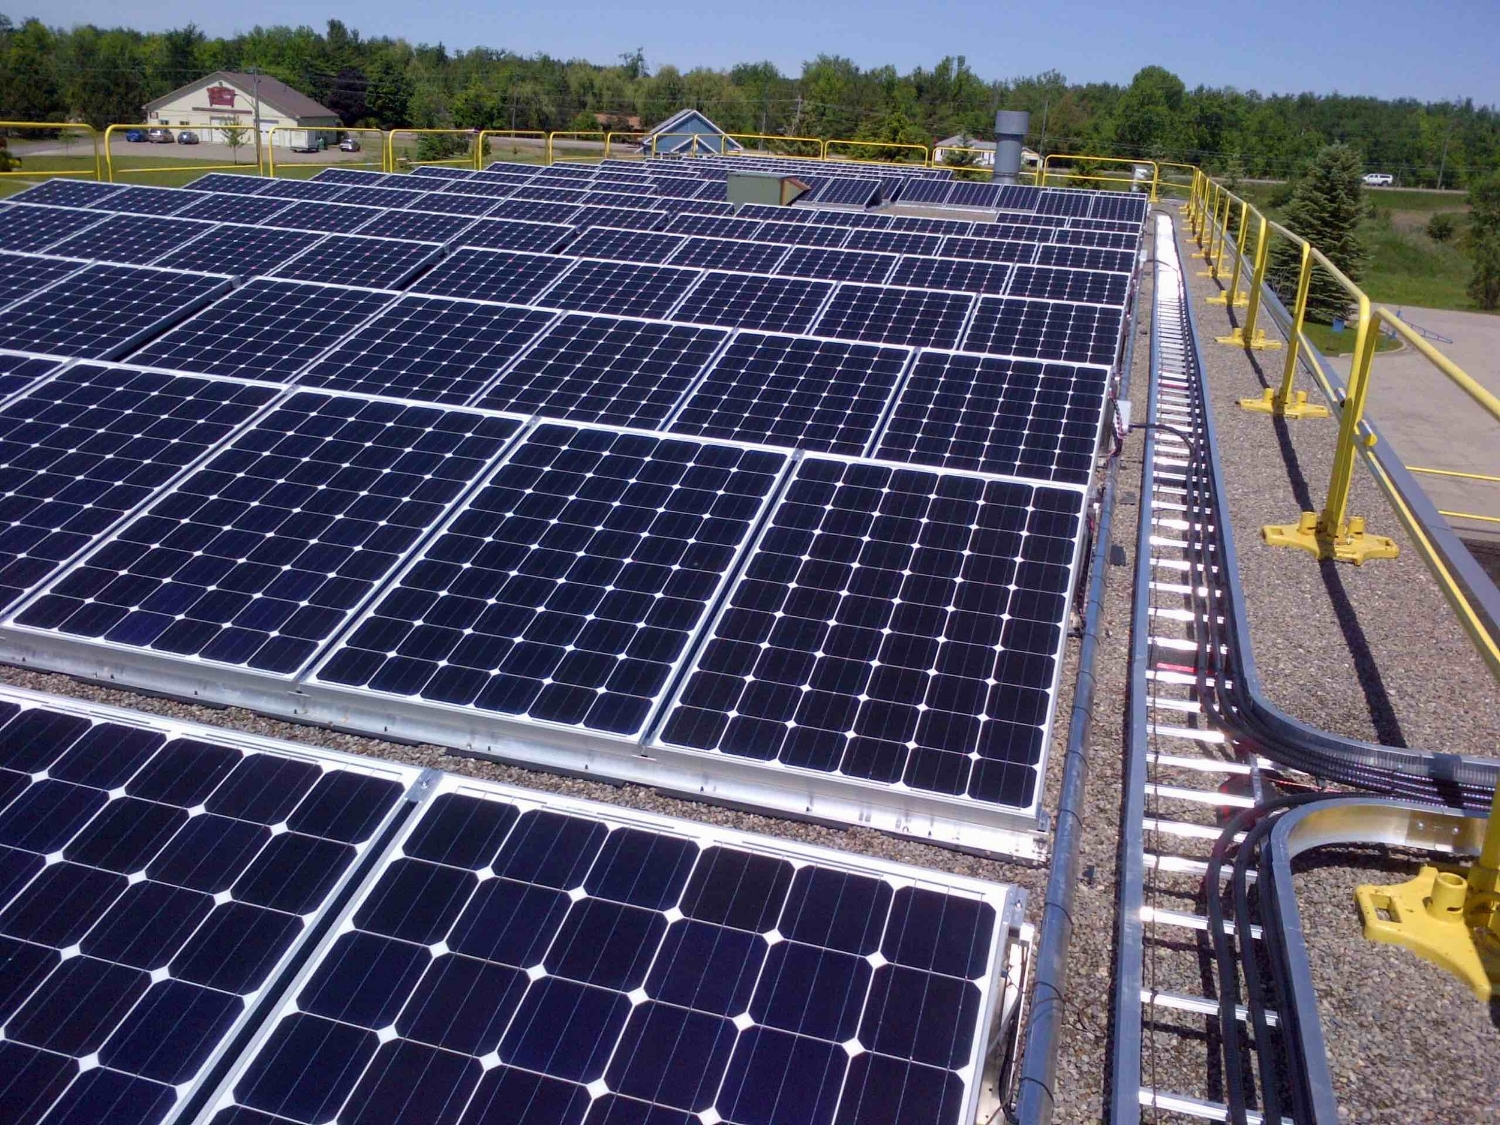 One of LIFEs Solar Projects: LIFE Solar JV 52 is a 60 kW project located in Erin ON.